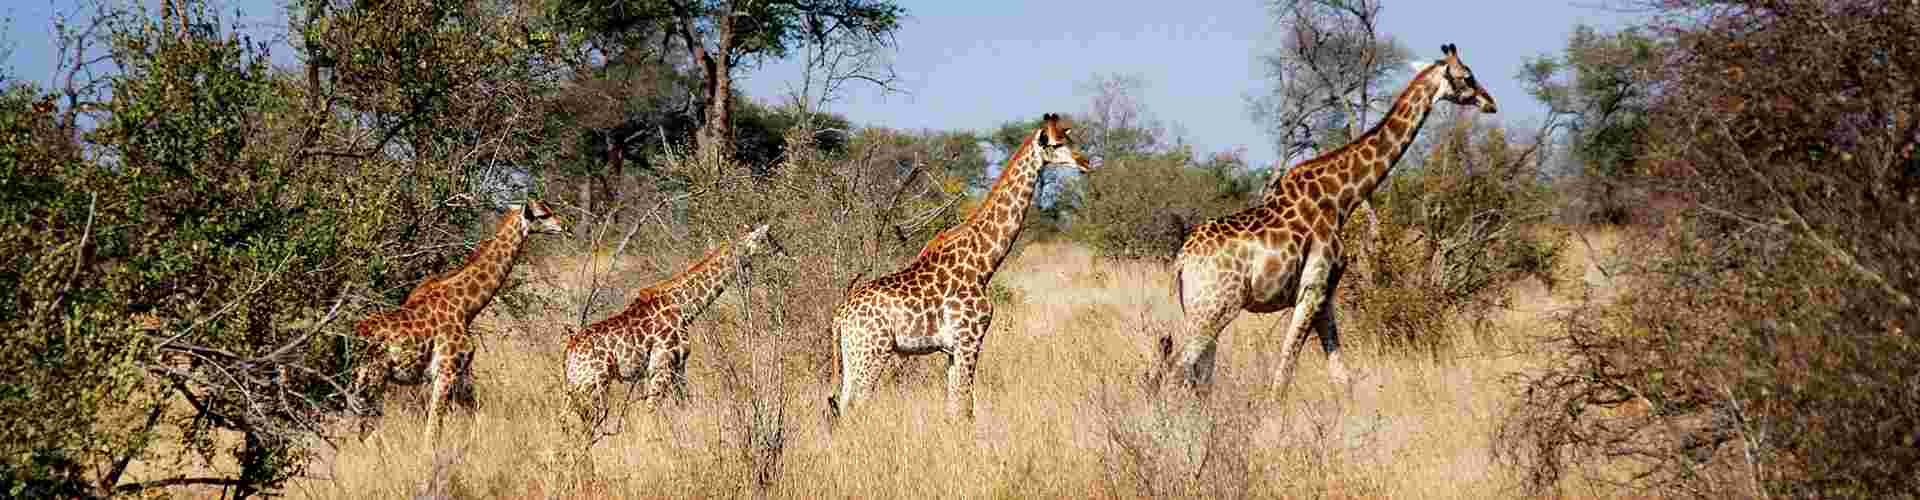 Intrepid Travel South Africa Reviews